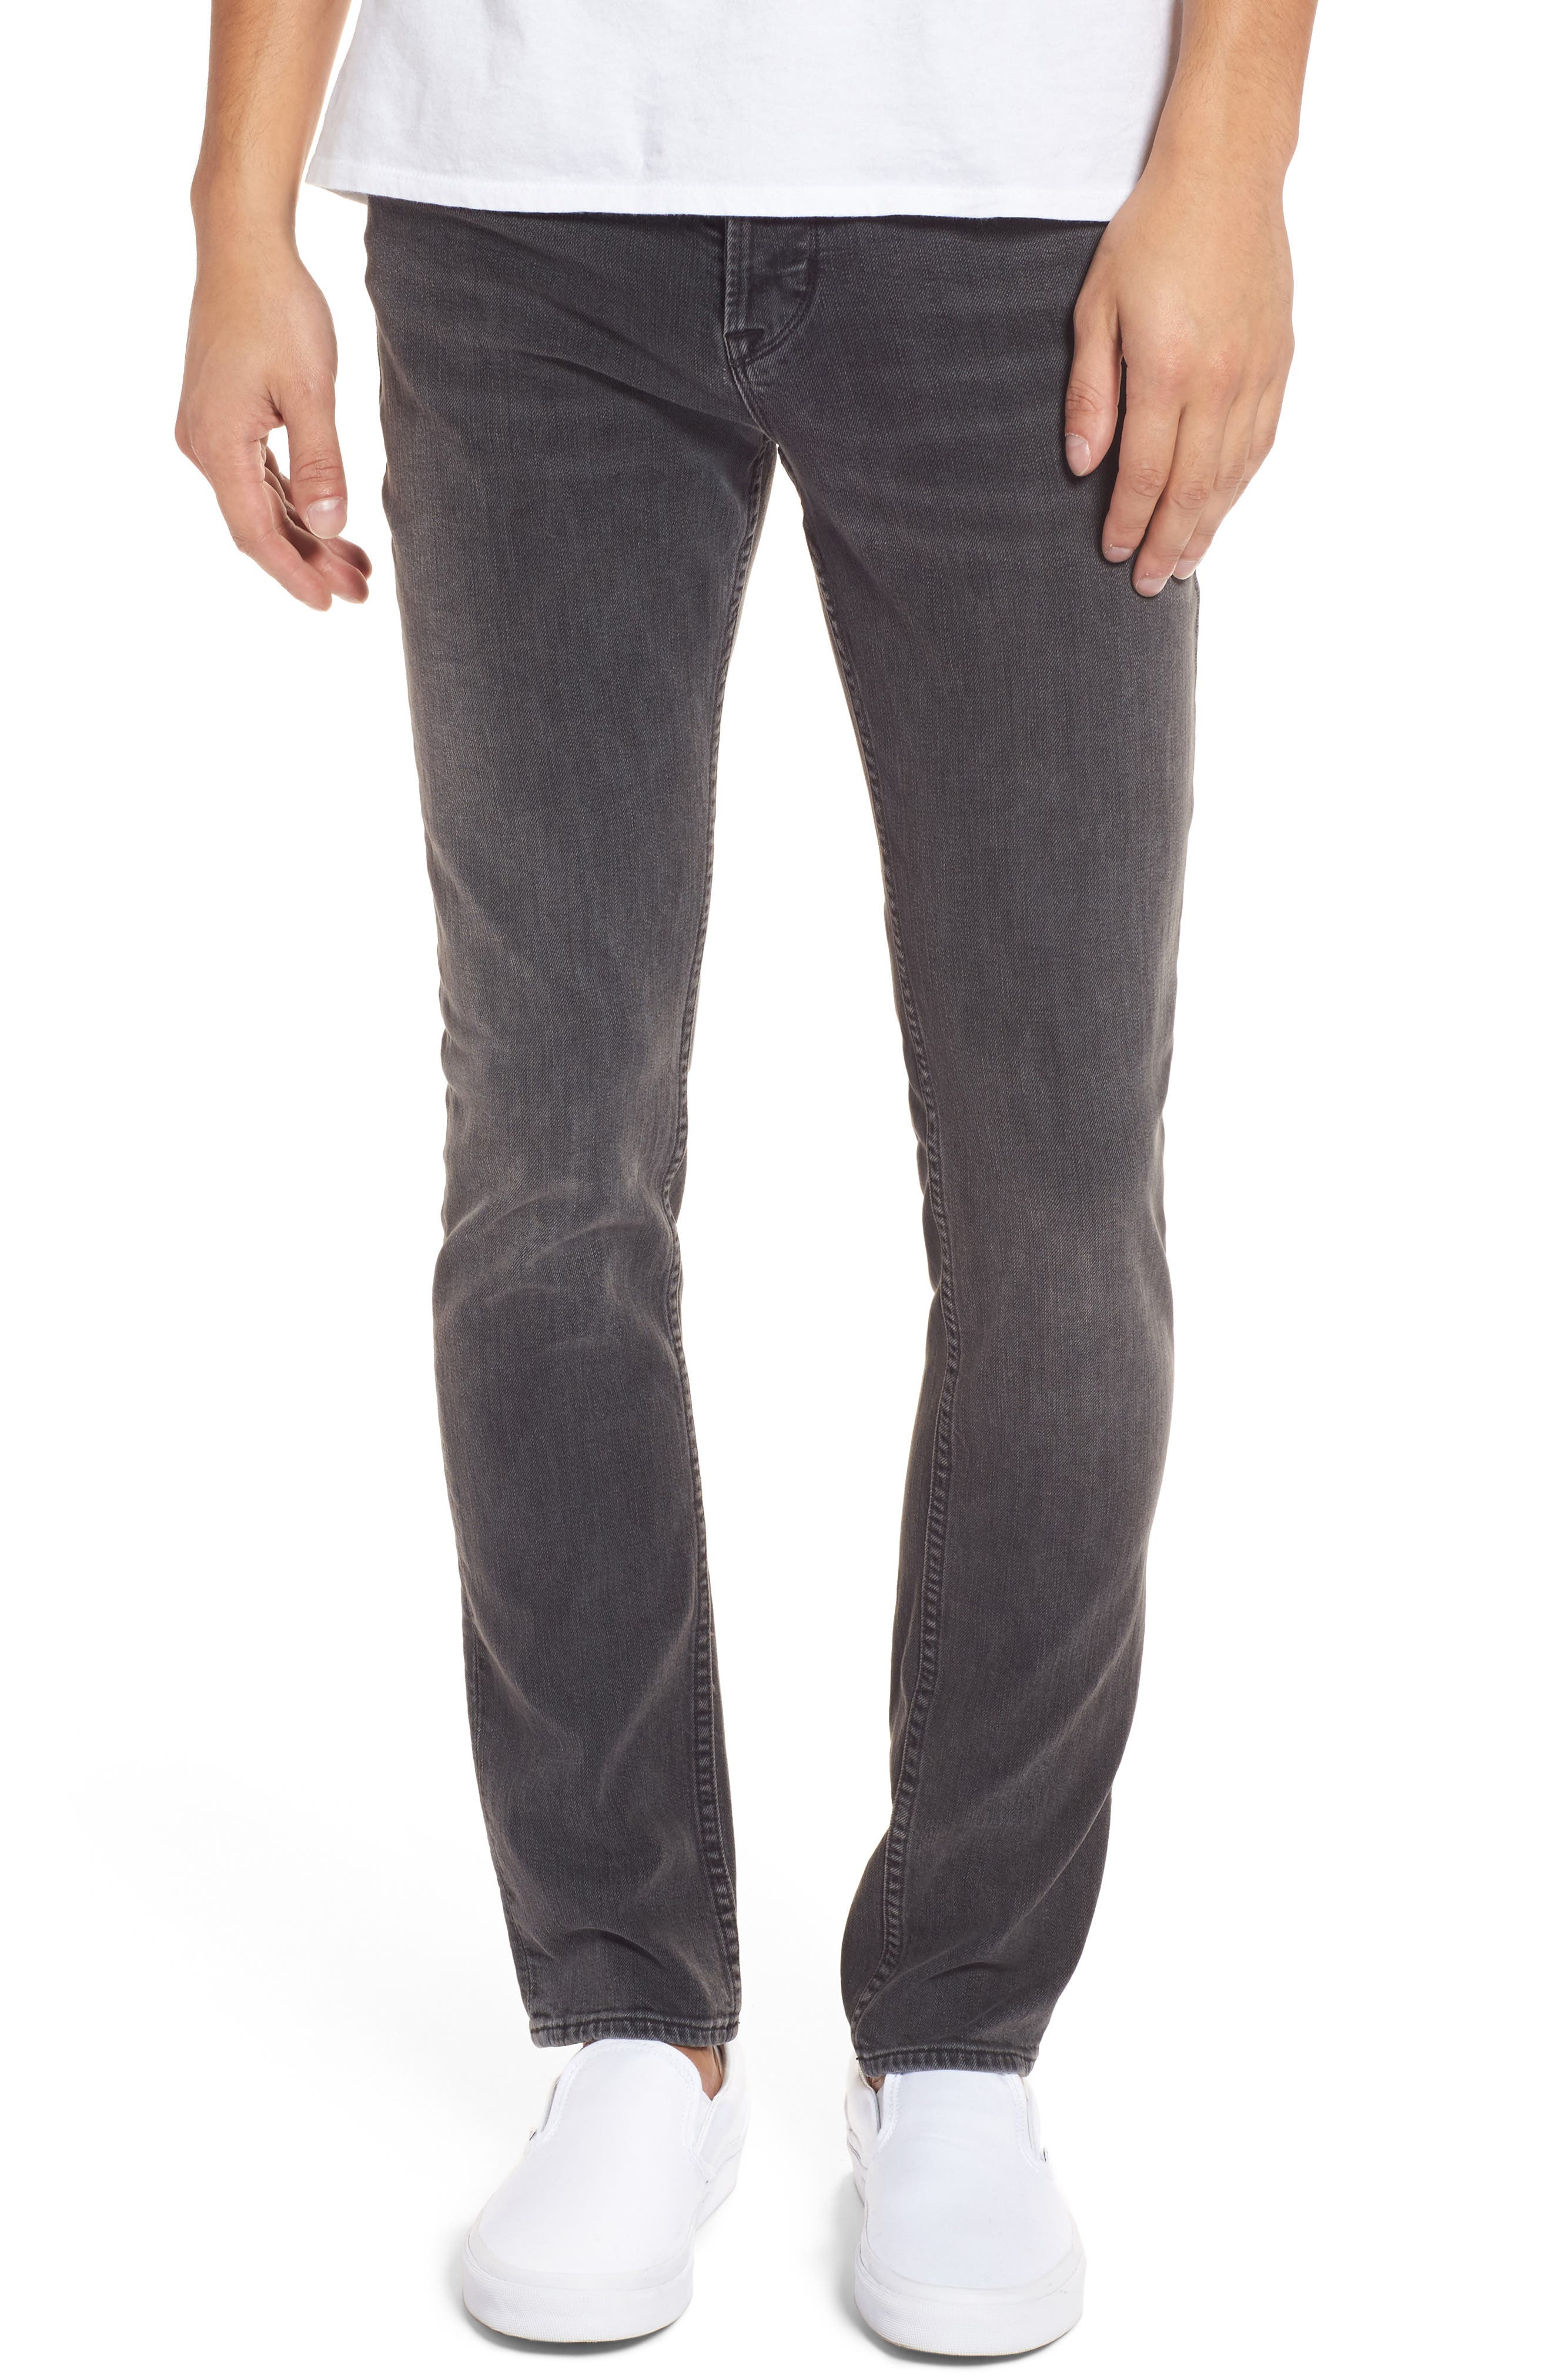 Axl Skinny Fit Jeans,                             Main thumbnail 1, color,                             020